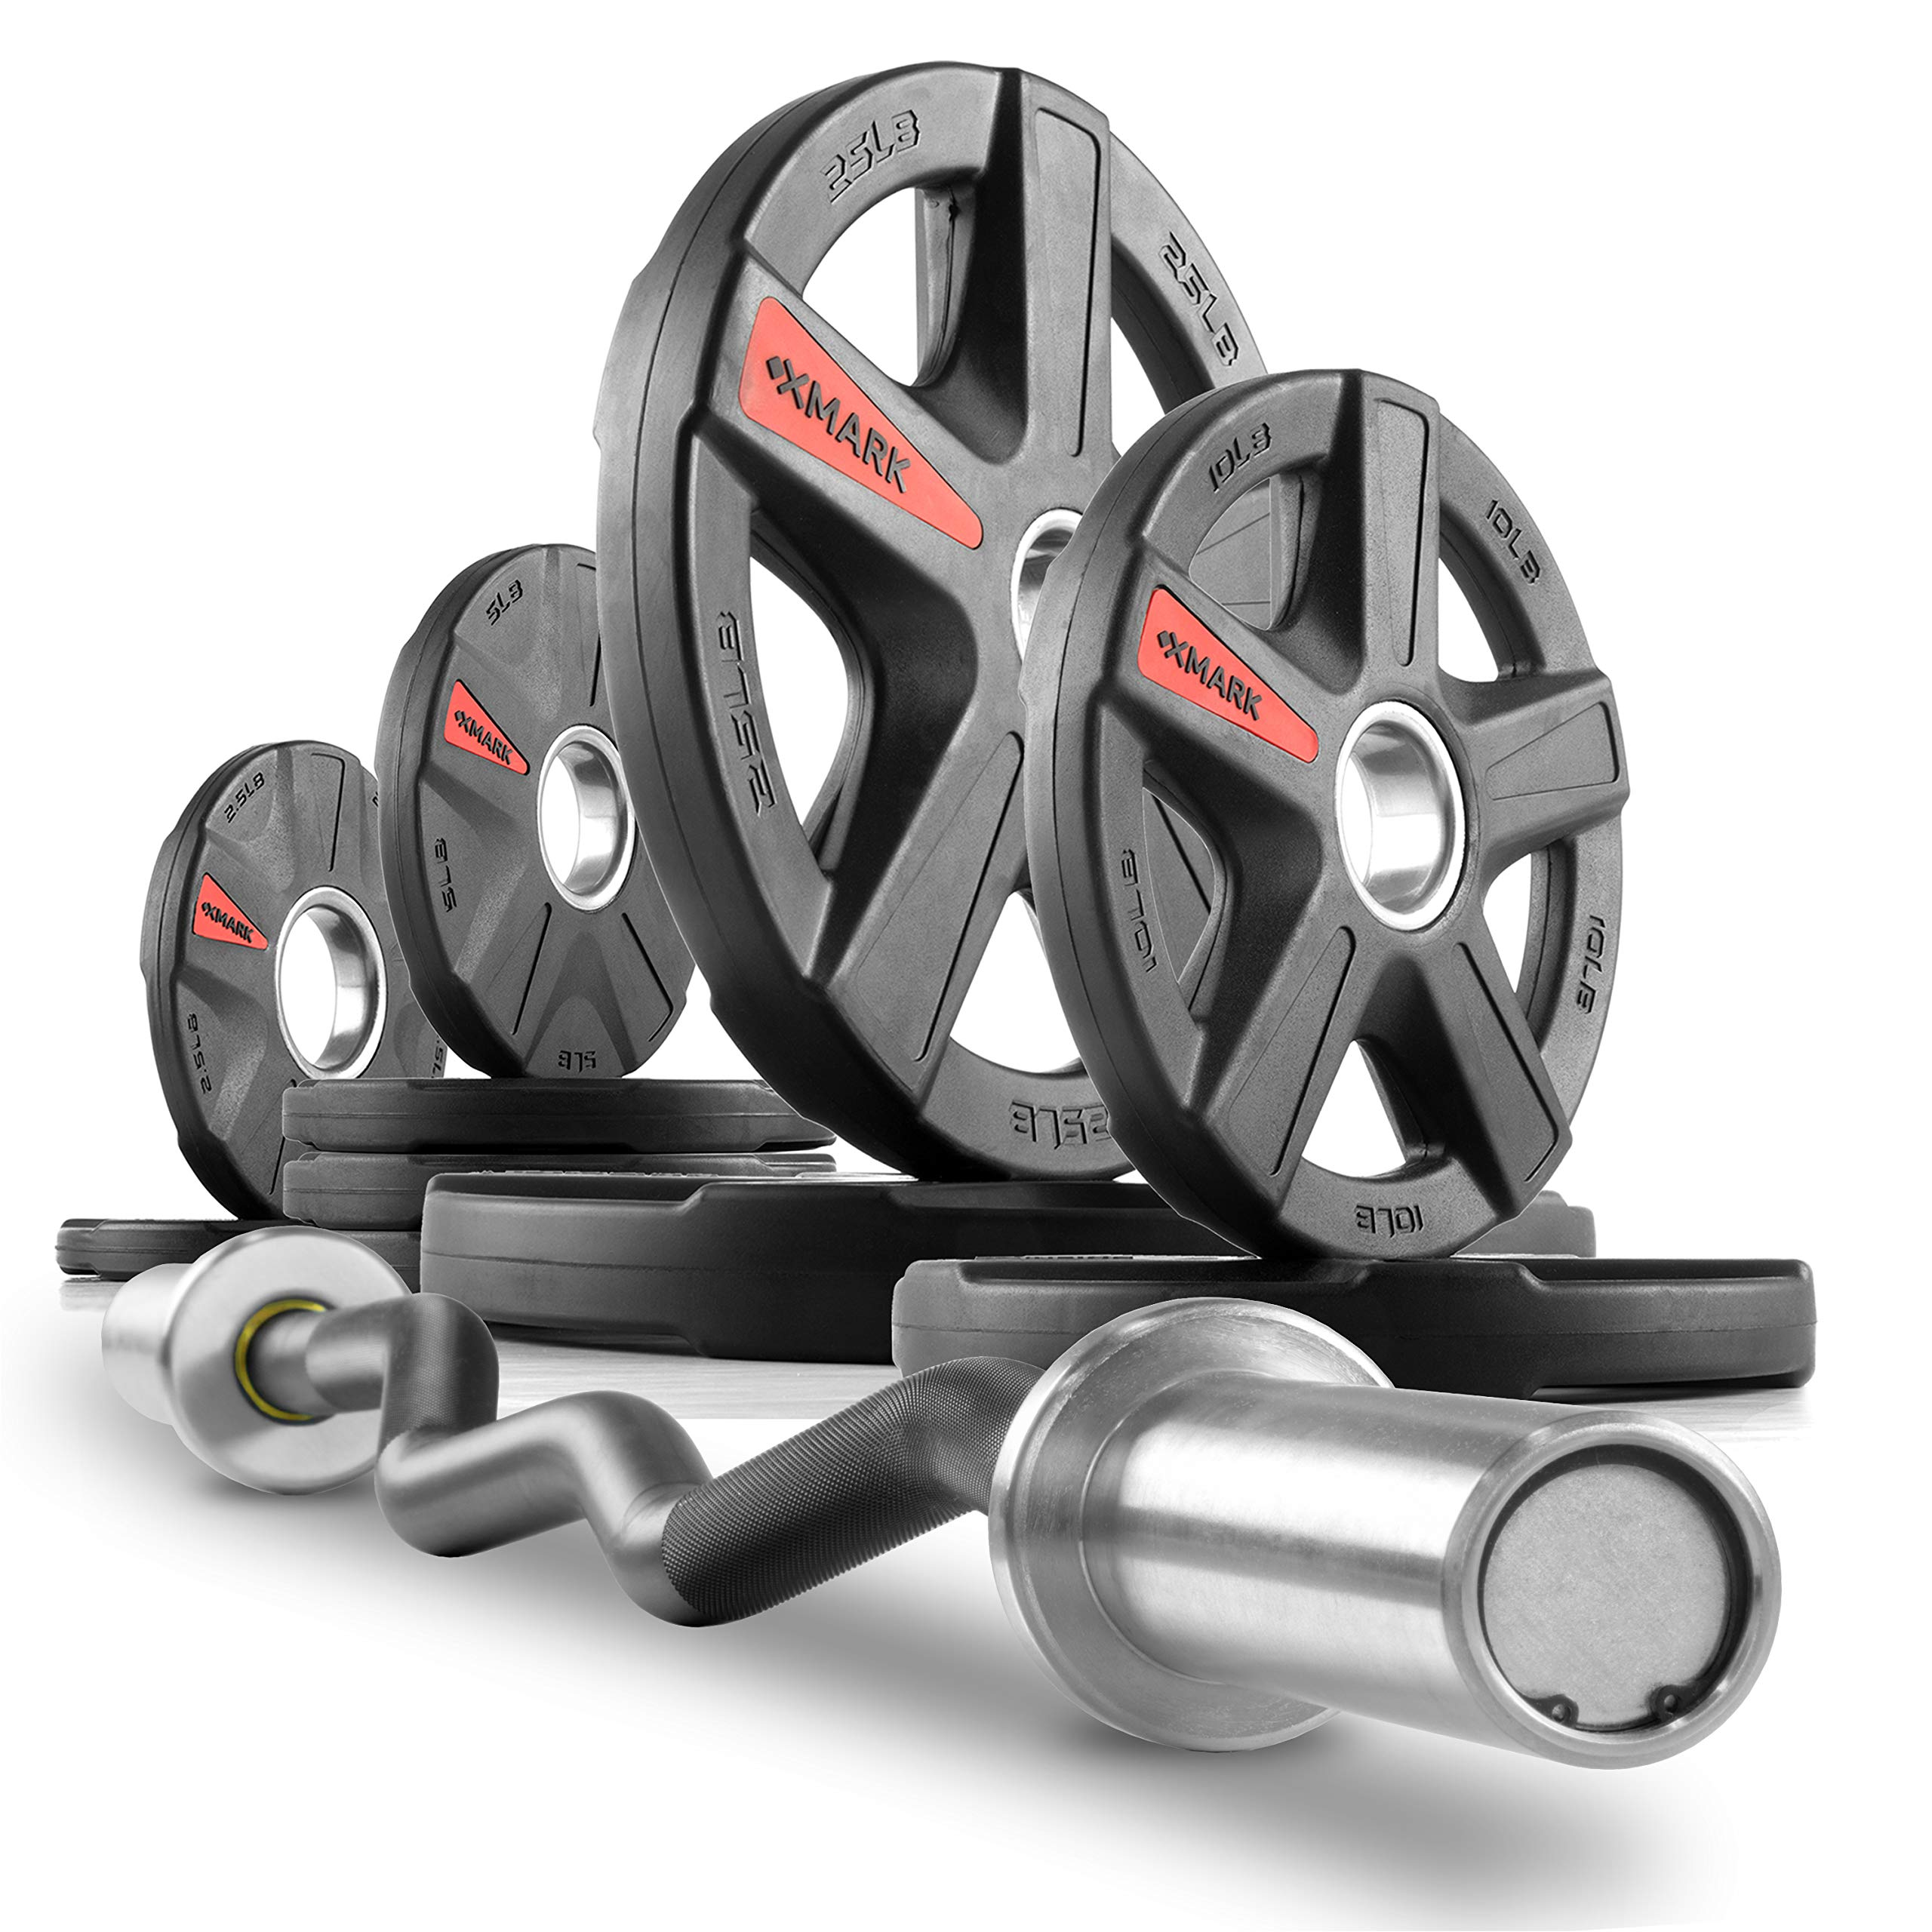 XMark Commercial Hard Chrome Olympic EZ Curl Bar Brass Bushings with Texas Star 95 lb. Olympic Plate Weight Set, Great for Bicep Curl and Triceps Extension, Can Be Used with Preacher Curl Bench